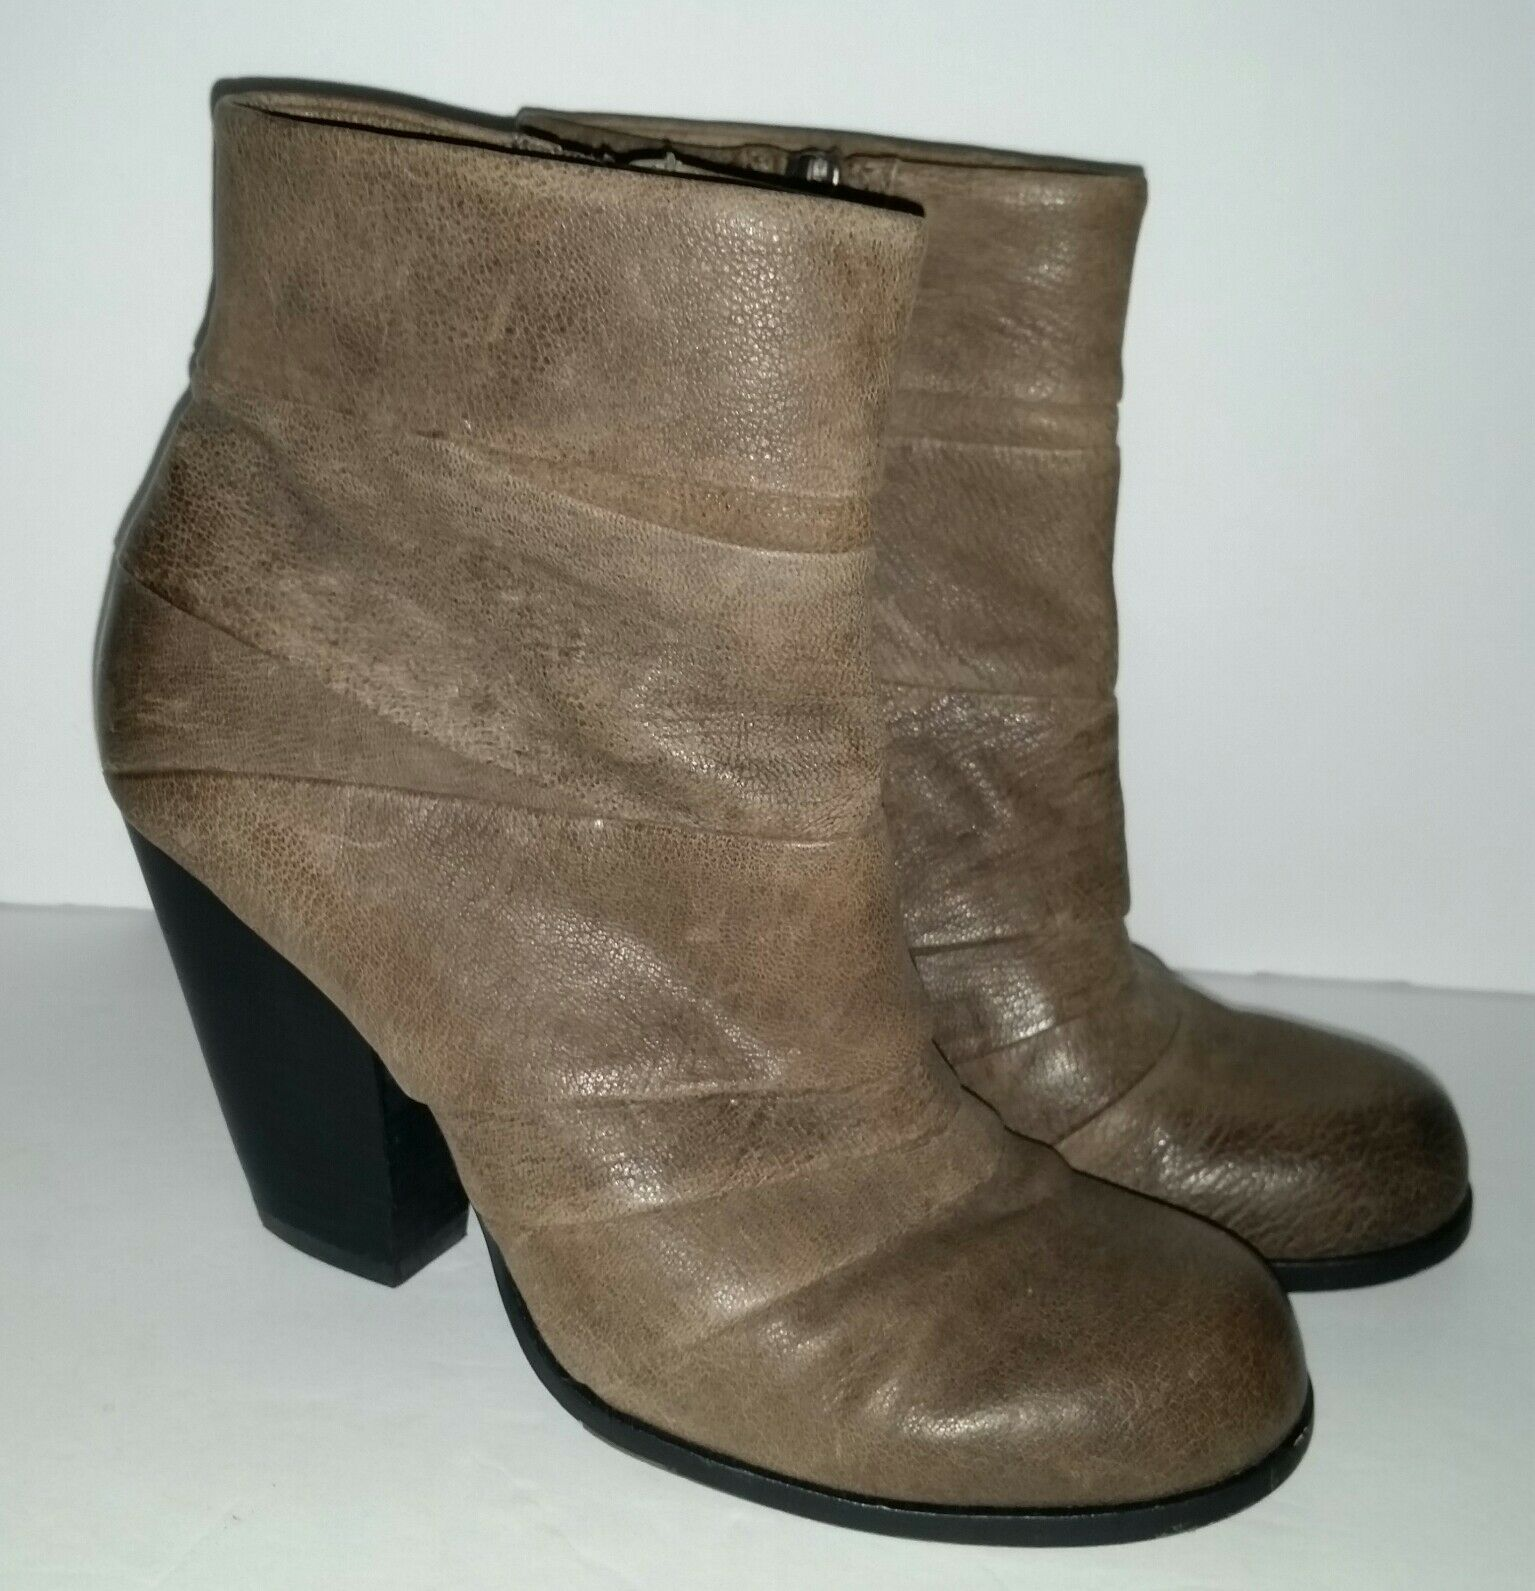 Vince Camuto Belta Women's 8 Taupe Leather Ankle Boots Heels Textured Seems EUC